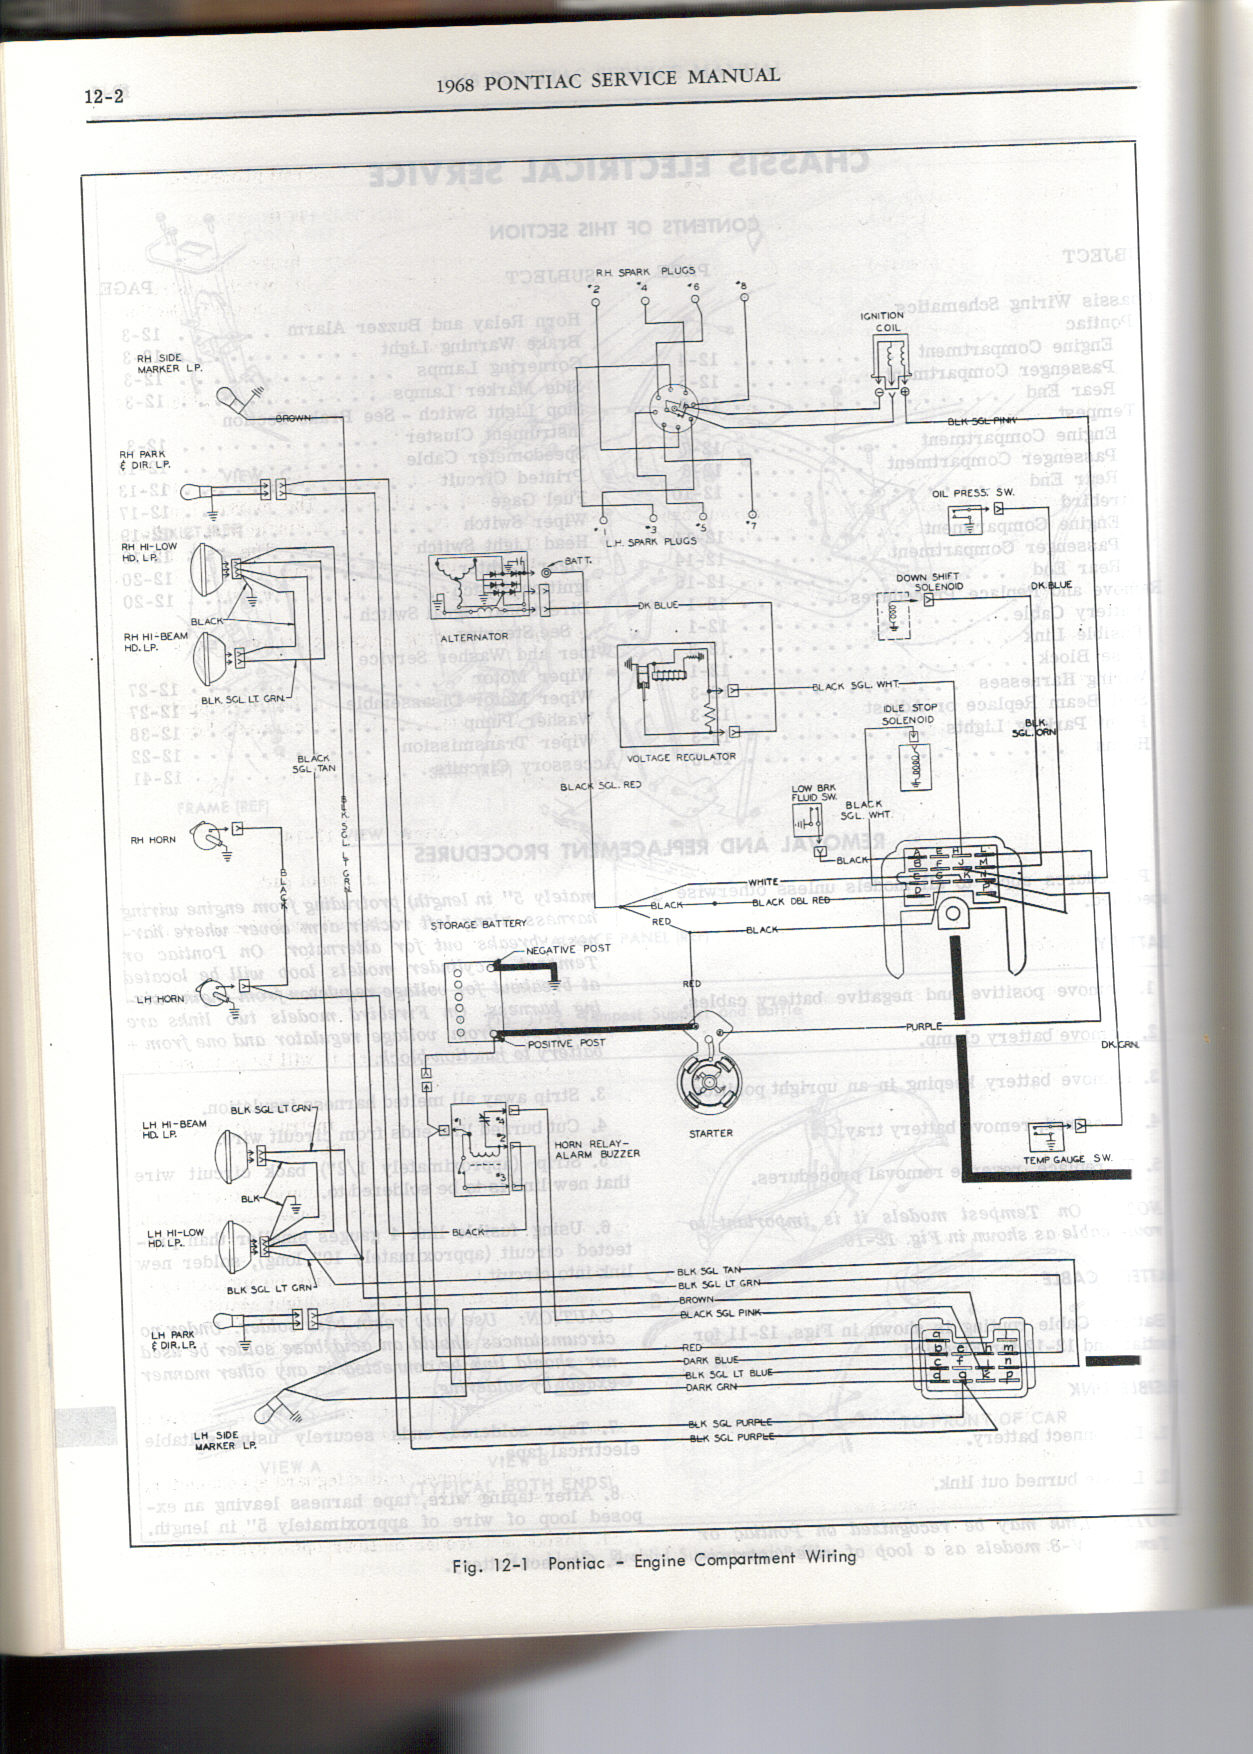 Chevy One Wire Alternator Wiring Diagram Pictures For Gm Outstanding moreover File Php File Filename Altextreg also Electrical Wiring Diagram For Chevrolet Corvette further Mwirecadi Wd likewise F E A C Aa Dde Cd. on 1964 cadillac deville wiring diagrams